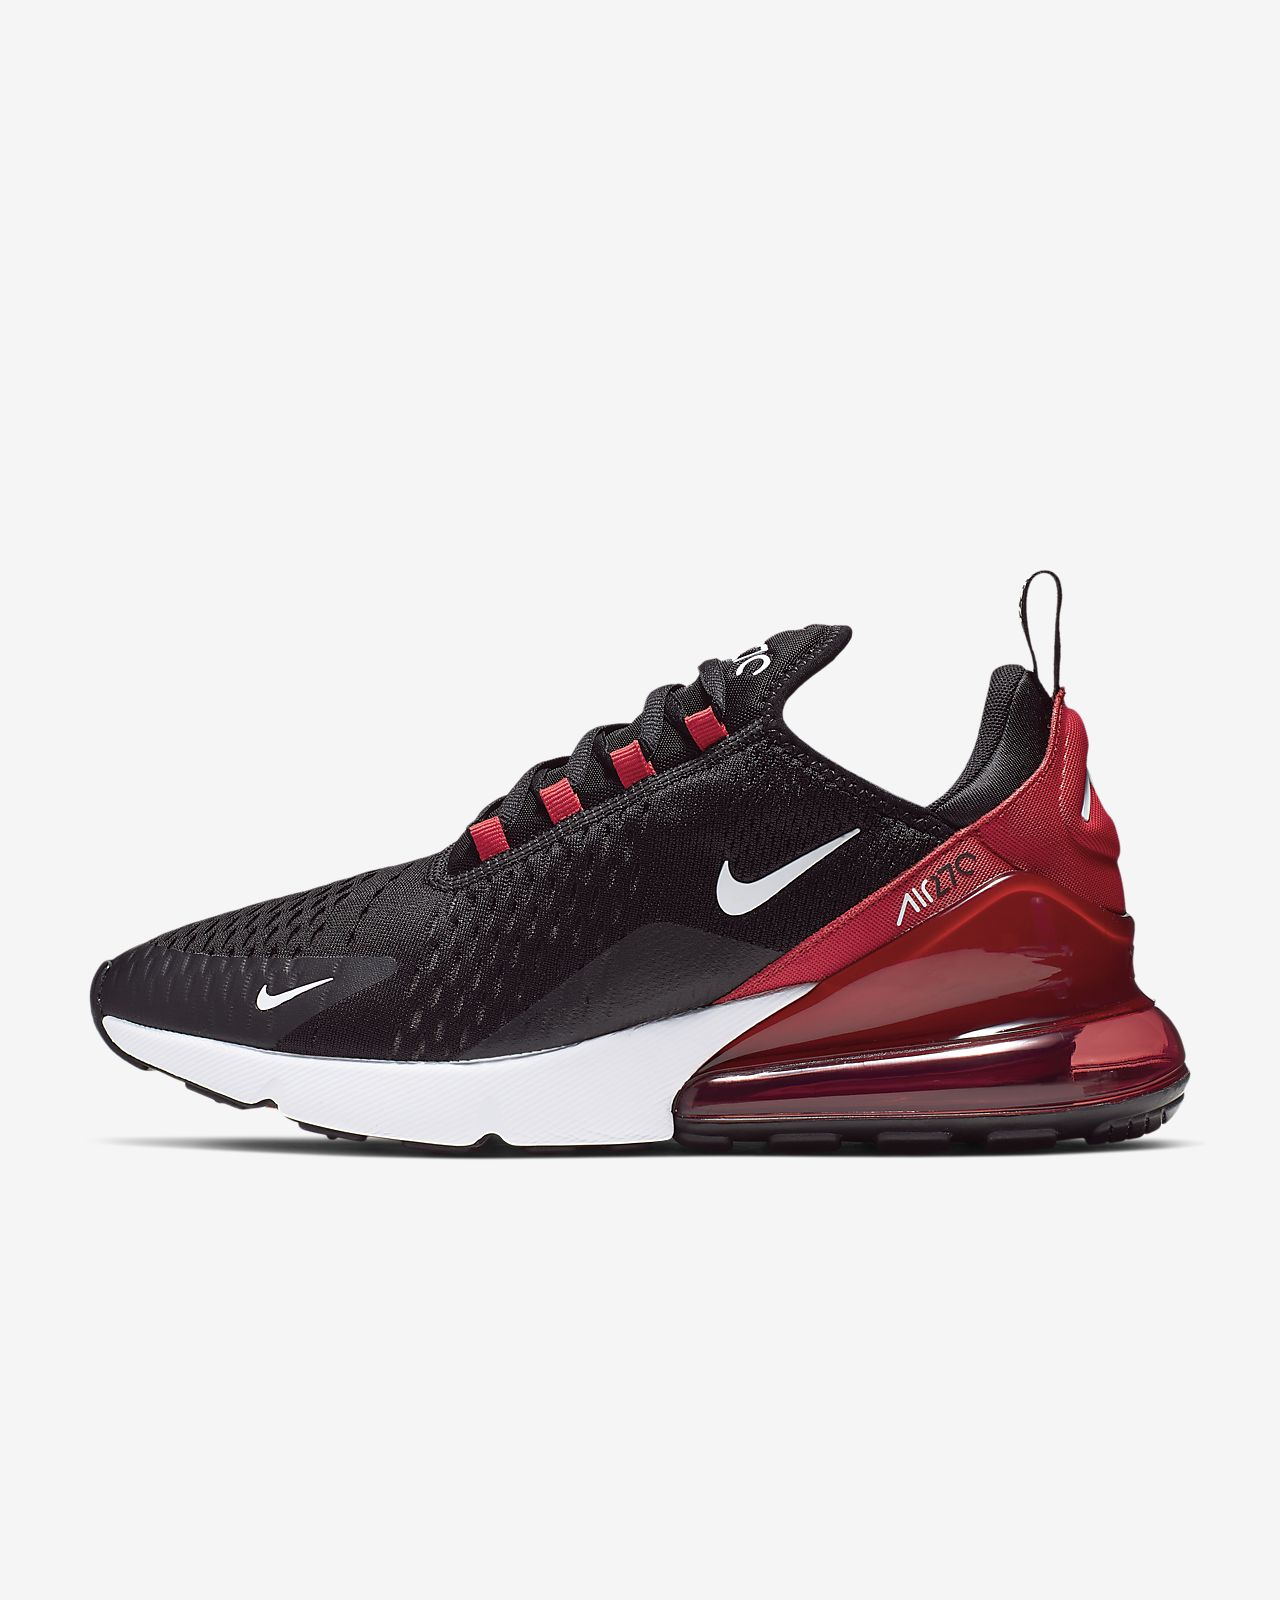 728941e7827 Nike Air Max 270 Men s Shoe. Nike.com GB